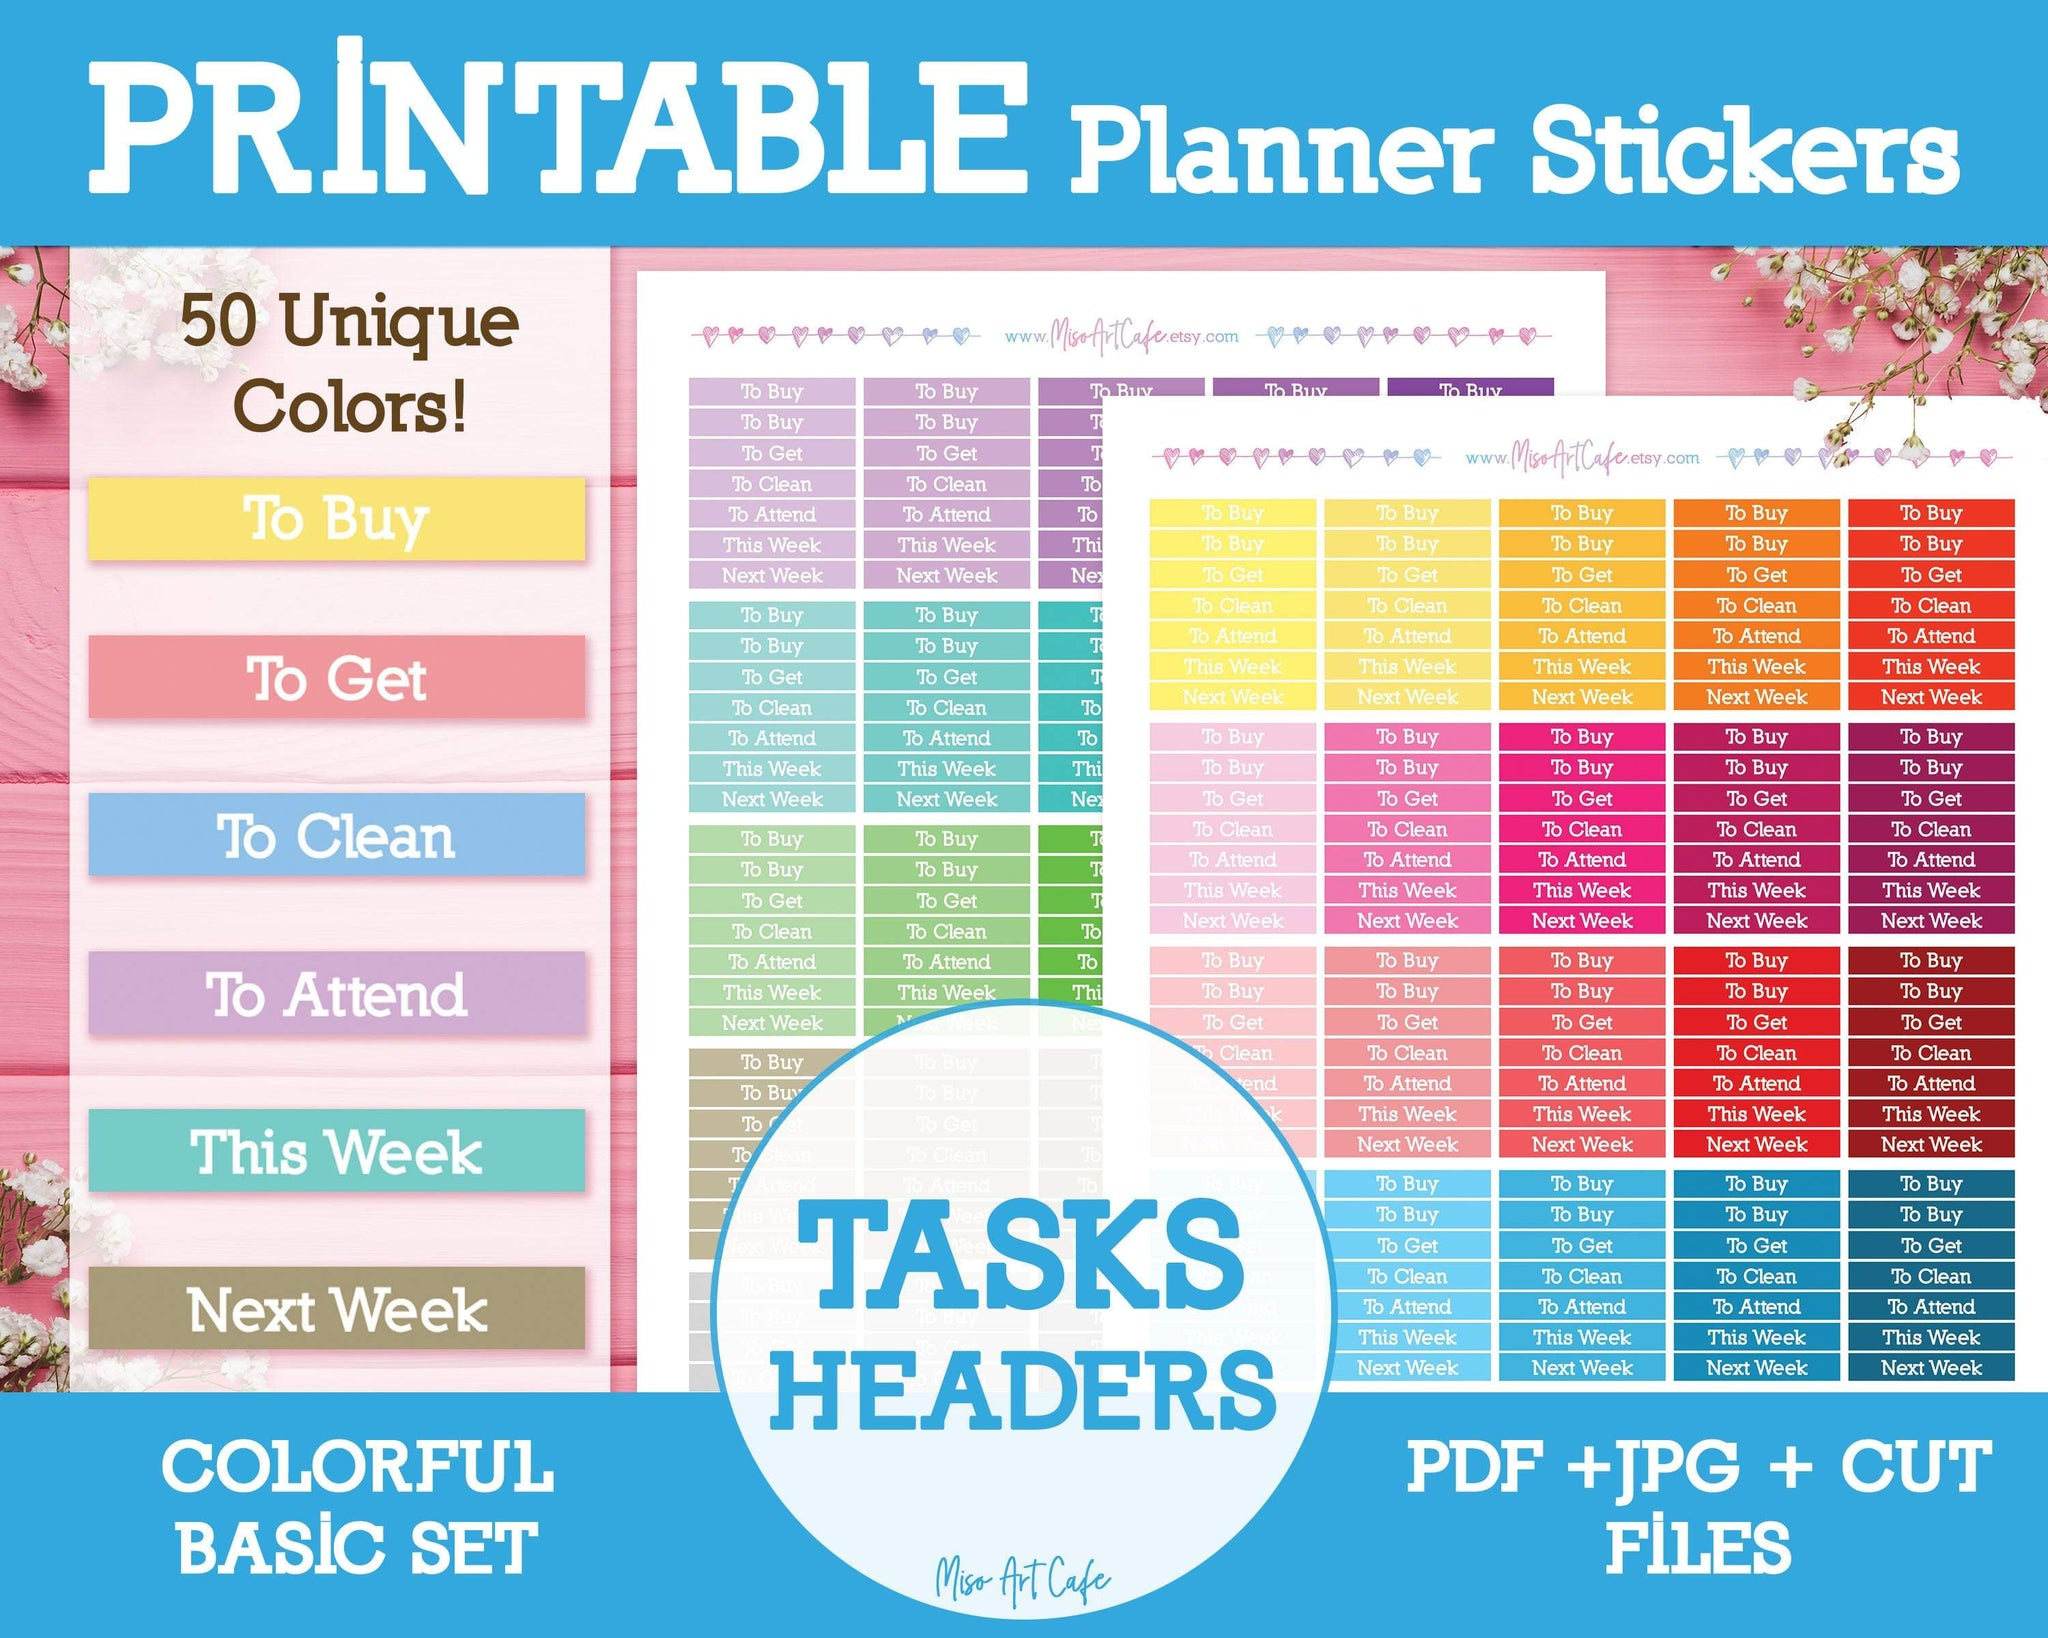 Printable Tasks Basic Headers - Colorful Basic Planner Stickers - Miso Art Cafe